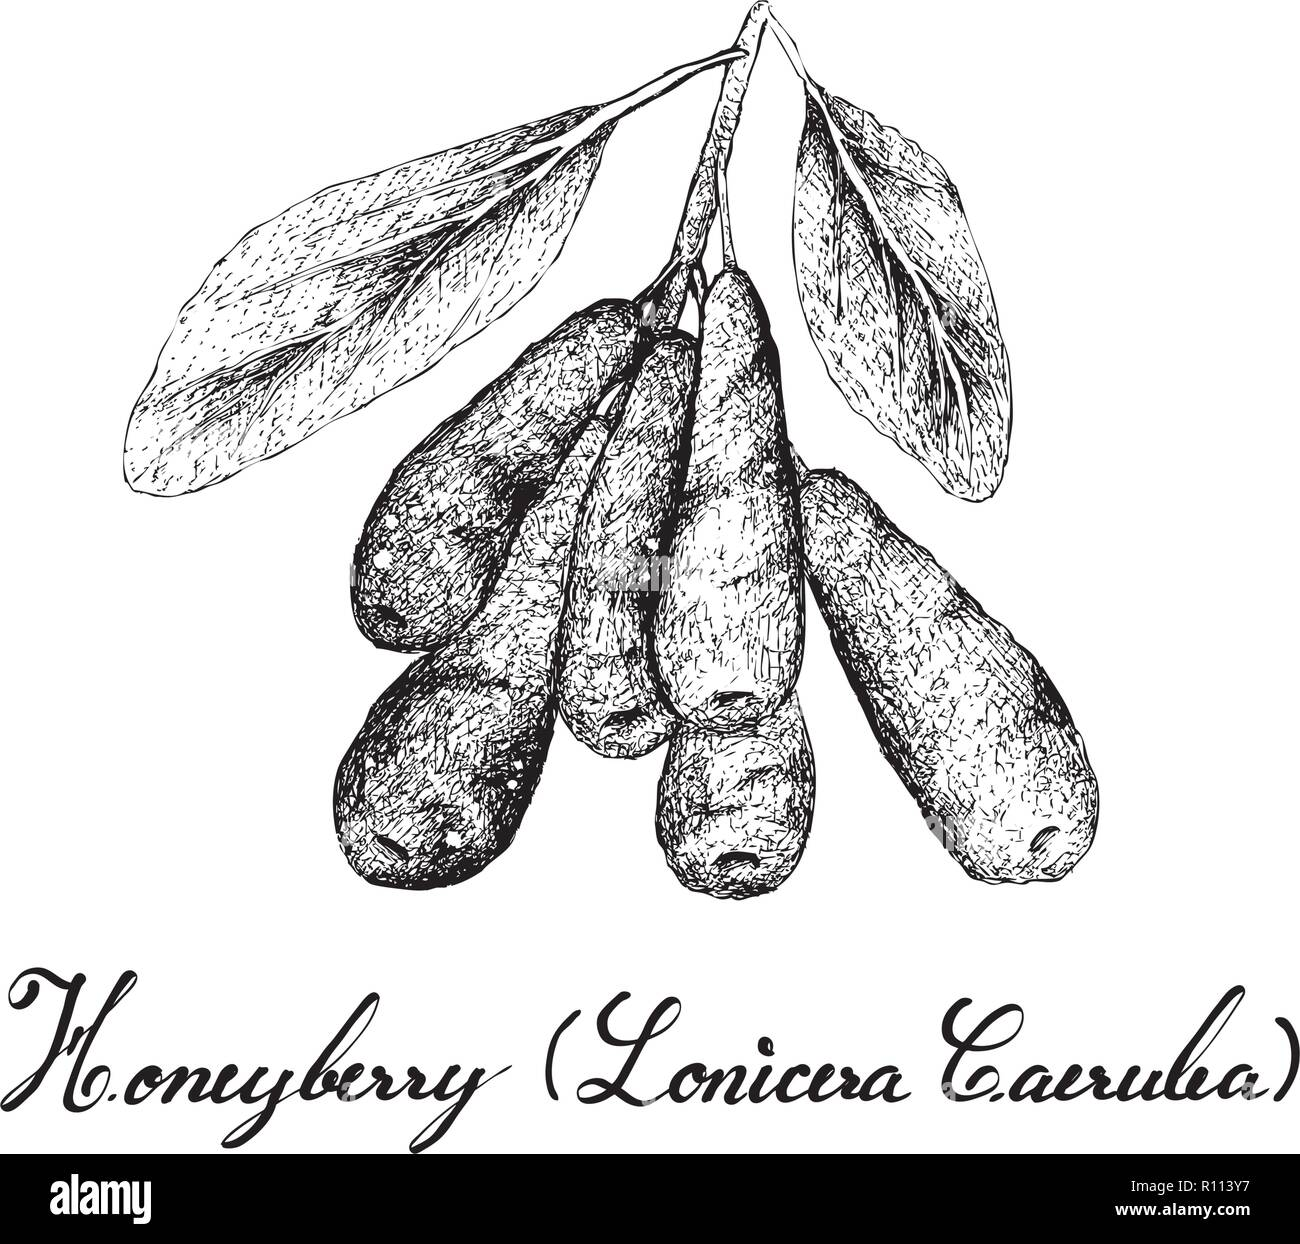 Tropical Fruit, Illustration of Hand Drawn Sketch Honeyberry, Haskap Berry or Lonicera CaeruleaFruits Isolated on White Background. Used for Food and  - Stock Vector